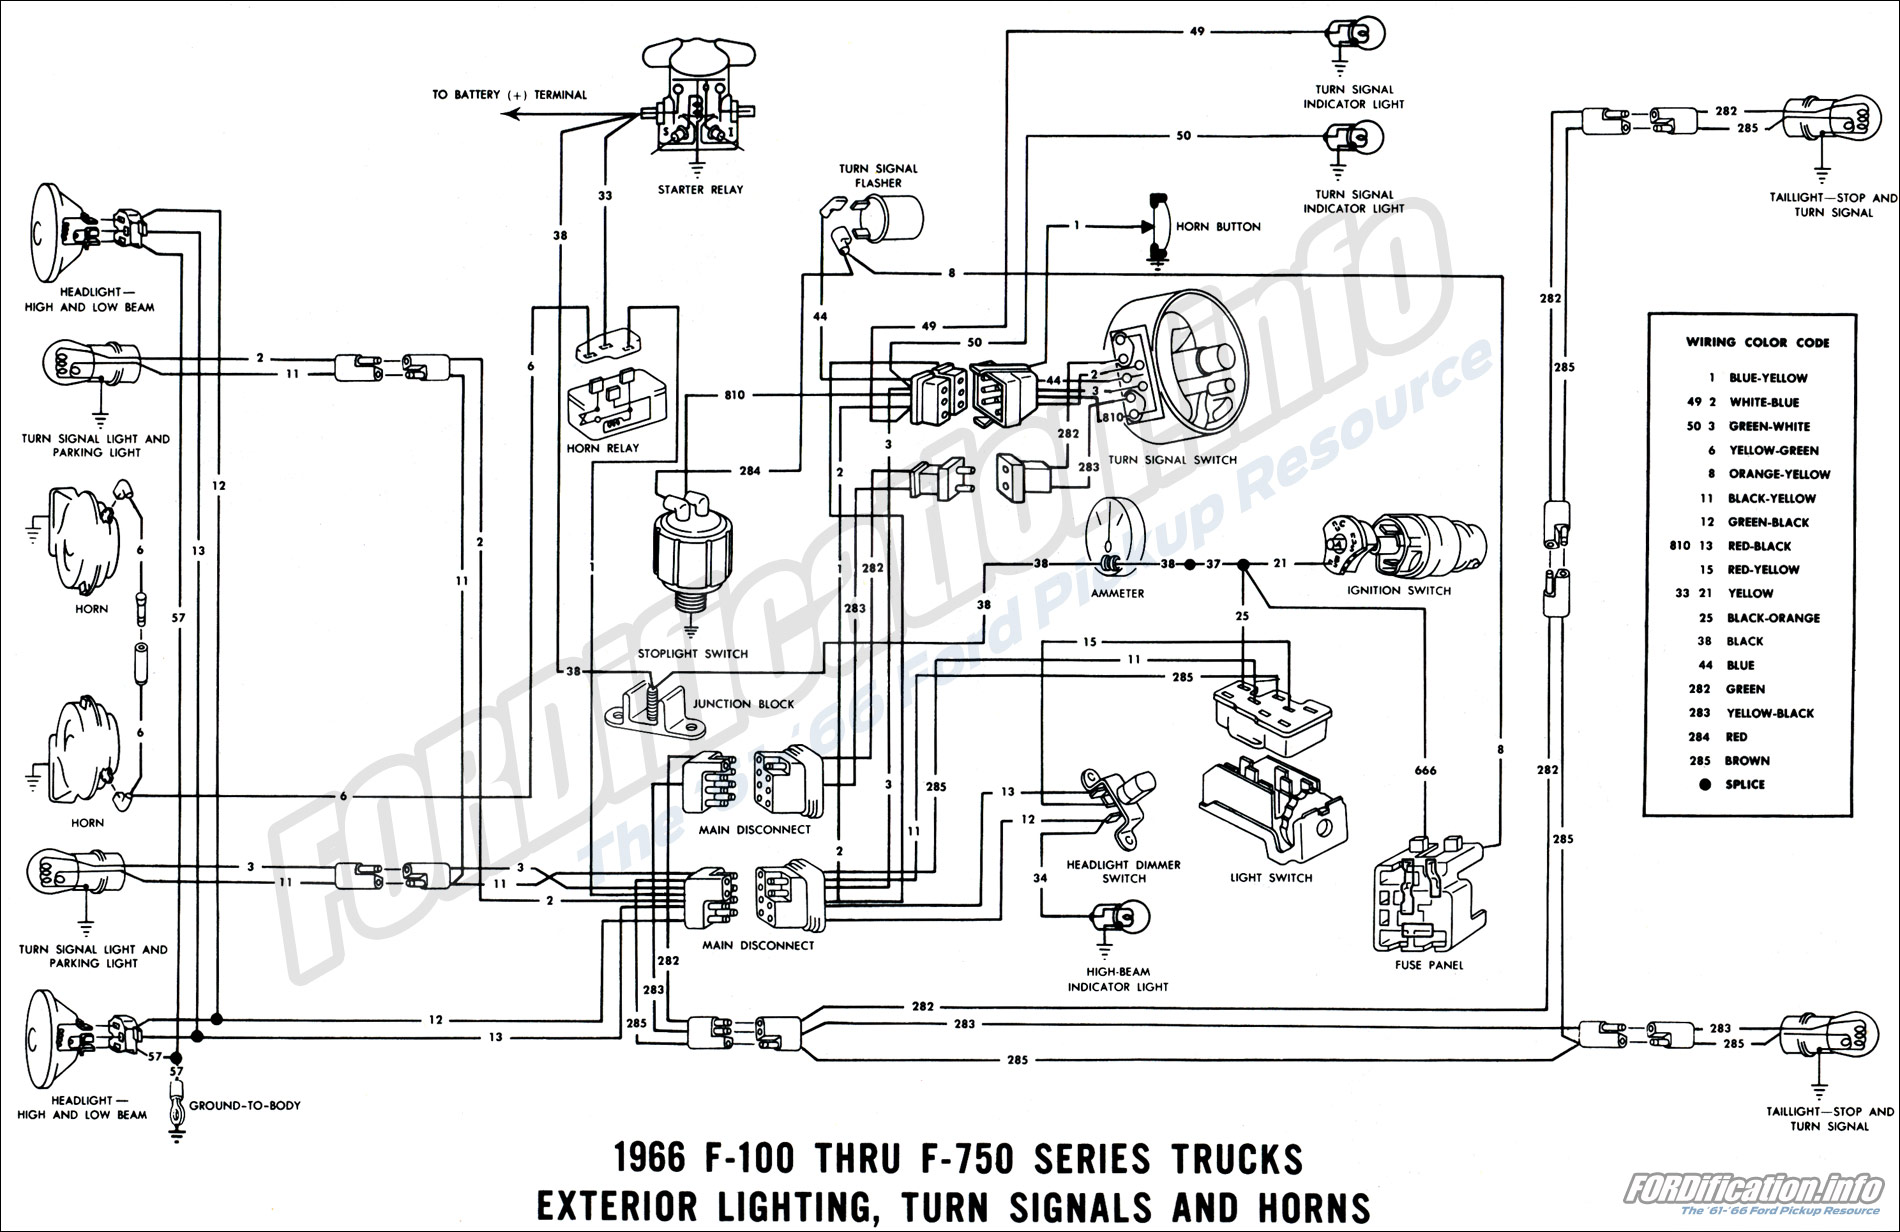 1966 Exterior Lighting Turn Signals And Horns Ford Truck Wiring Diagrams